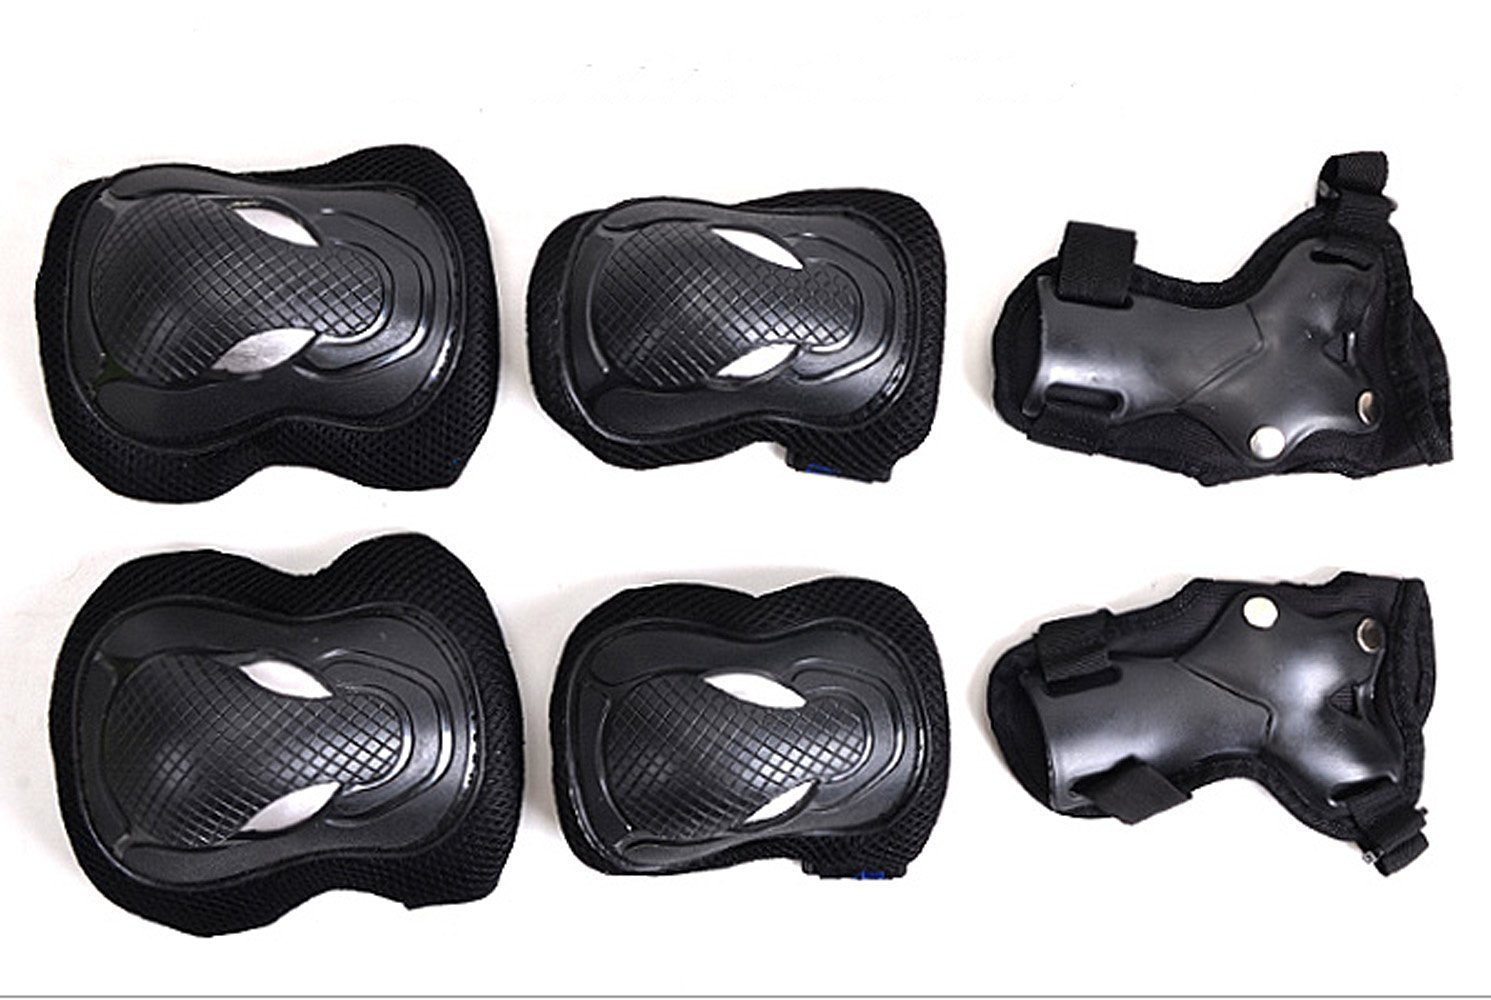 Elbow Wrist Knee Pads and Helmet Sport Safety Protective Gear Guard Kid Baby Kit